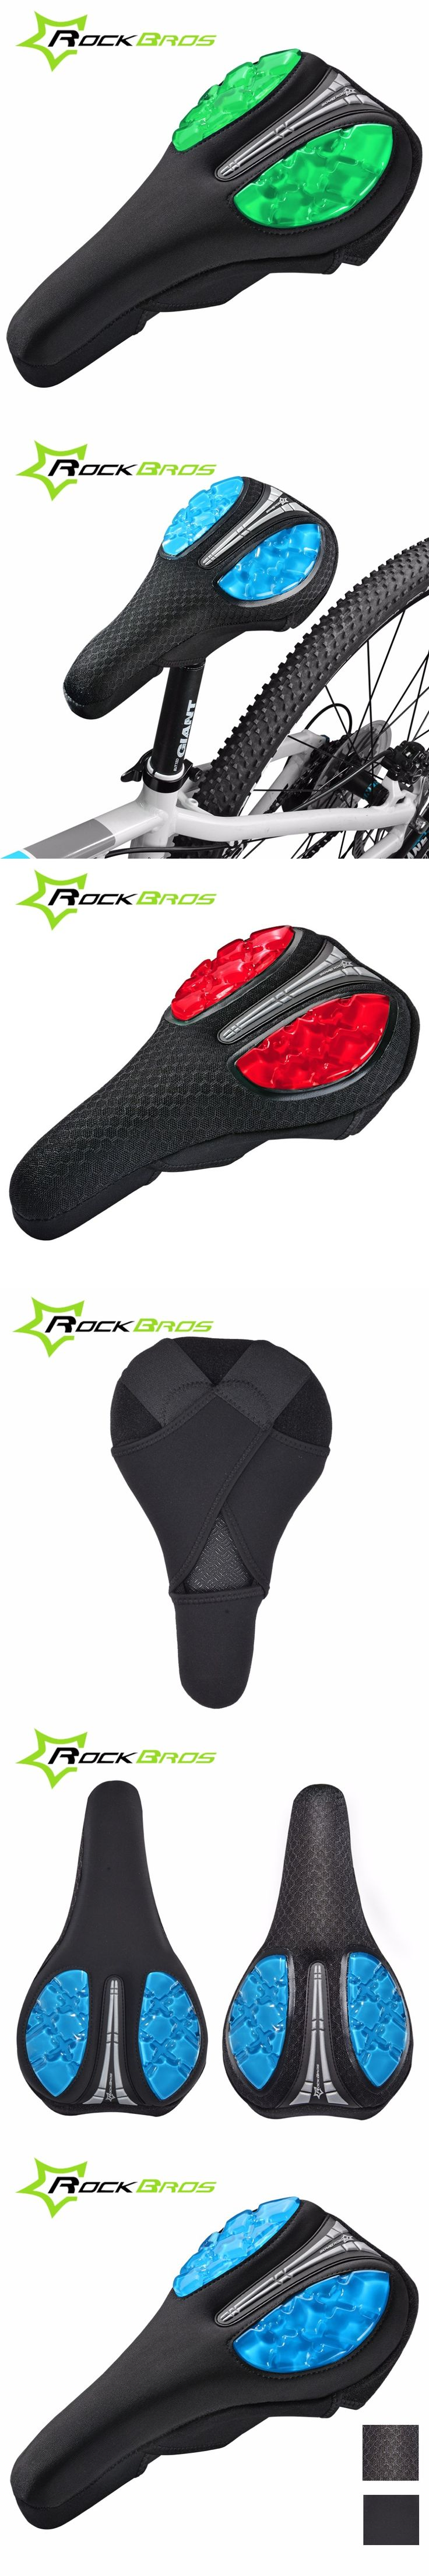 ROCKBROS MTB Bicycle Front Saddle Cover Mountain Road Bike Soft Comfortable Cushion Saddle Seat 3 Colors Outdoor Cycling Parts